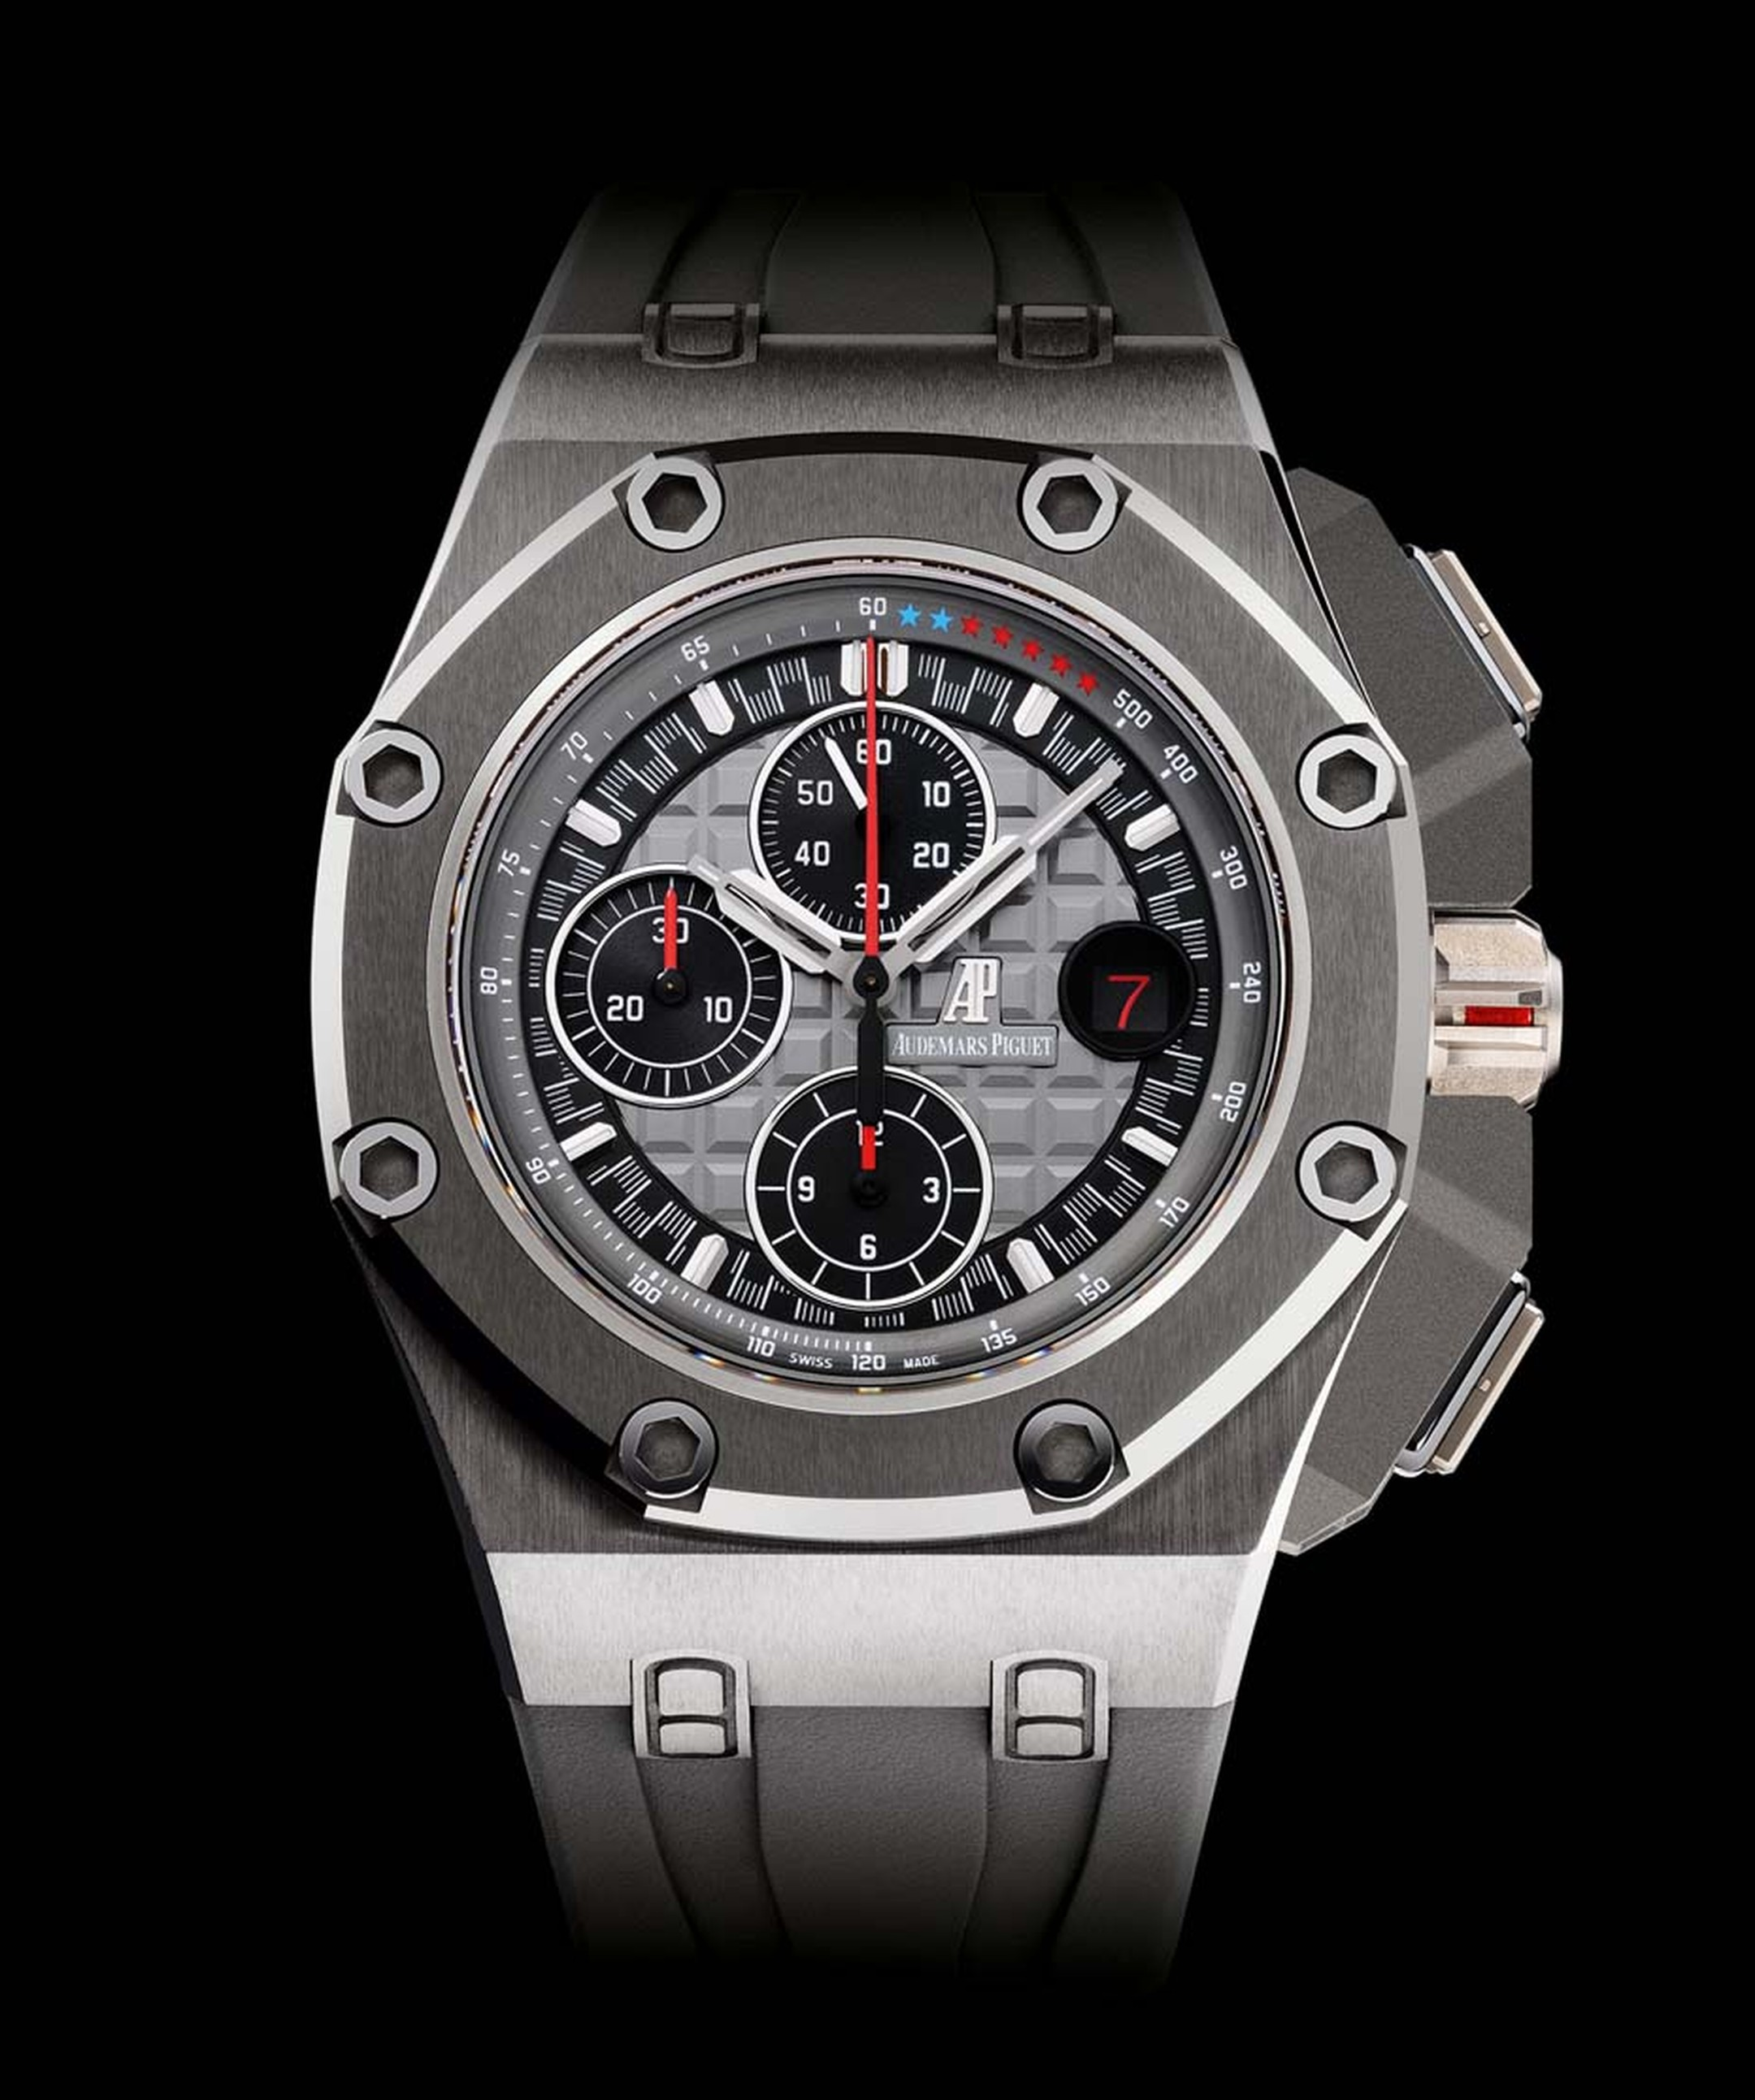 Audemars Piguet's Royal Oak Offshore Michael Schumacher chronograph was launched in 2012 with three limited-edition models in titanium (pictured), rose gold and platinum. All three versions have virtually unscratchable cermet bezels and butter-soft rubber